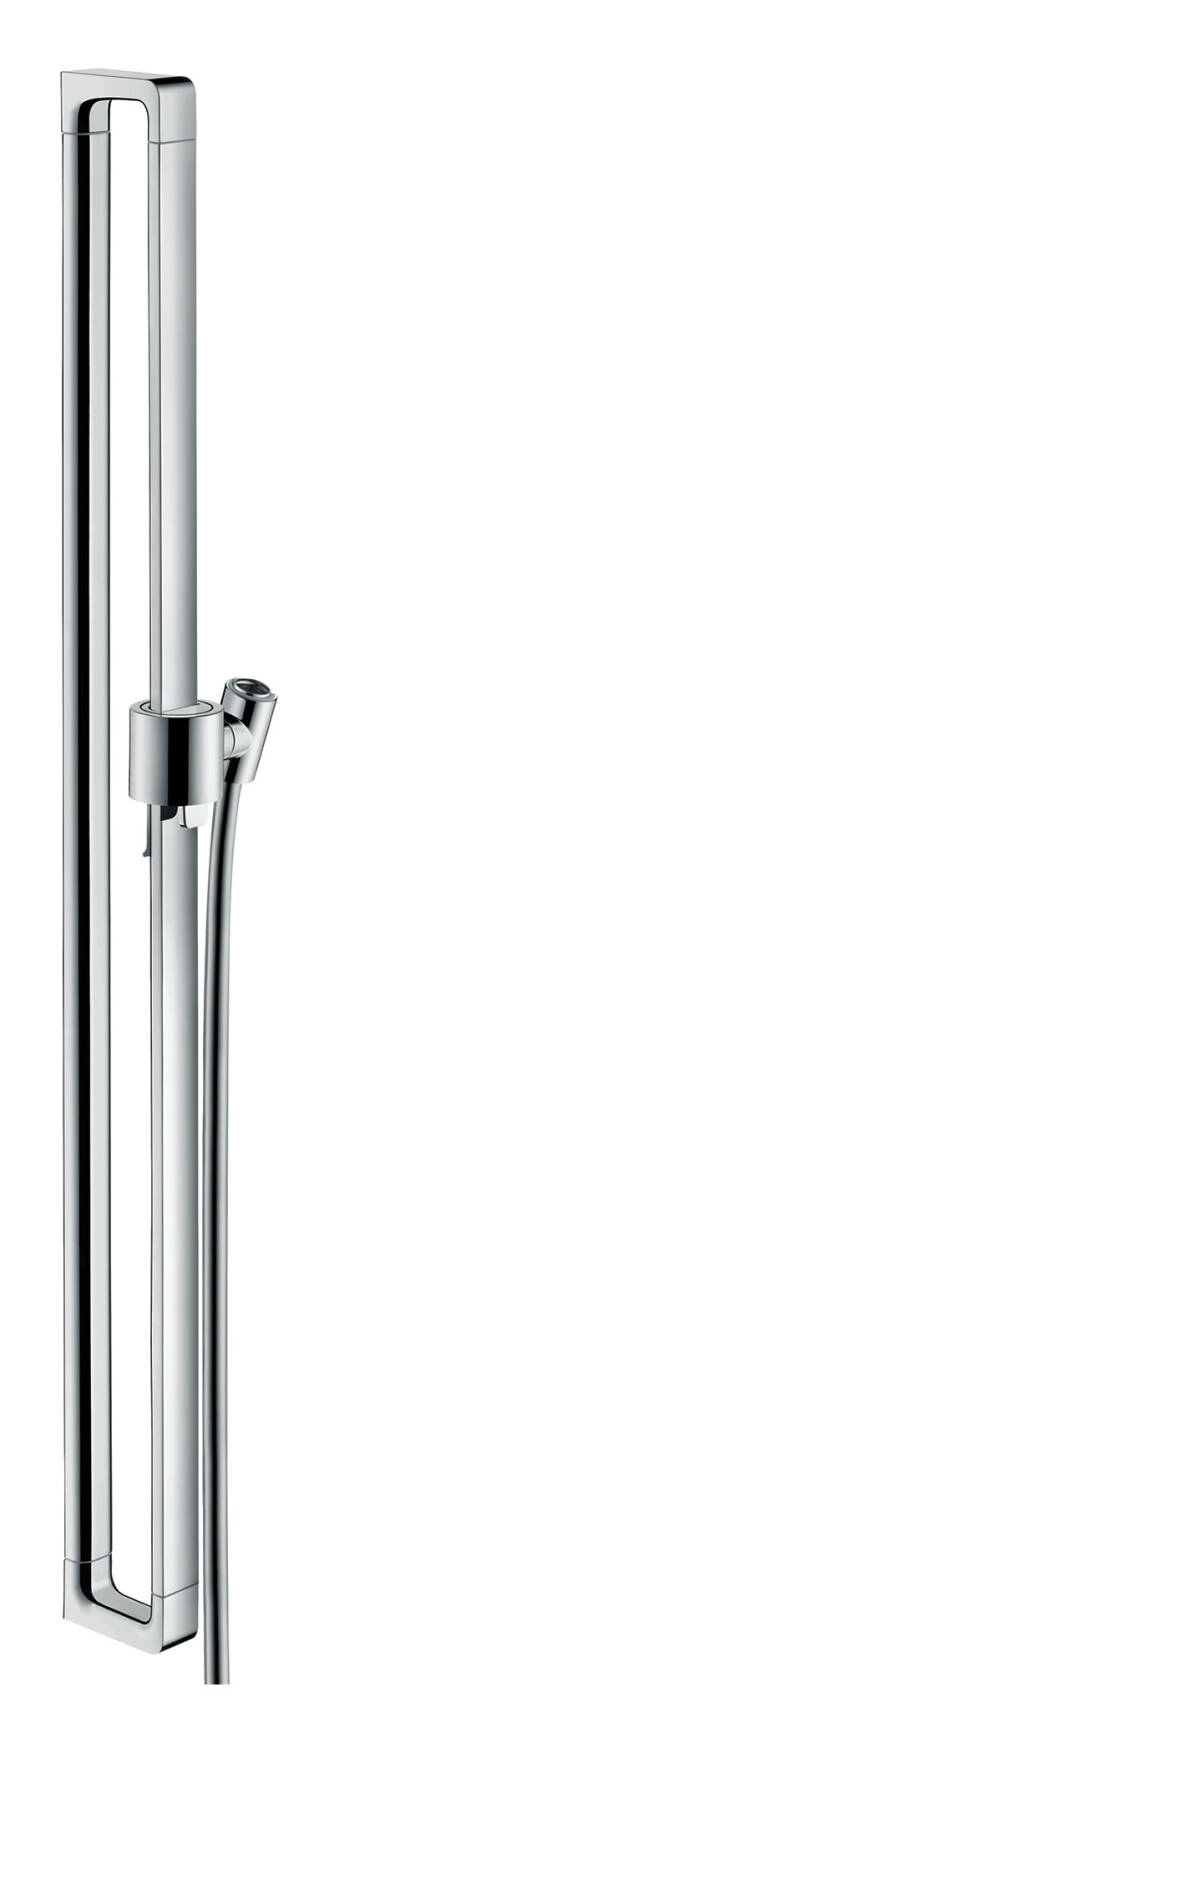 Shower bar 0.90 m, Polished Brass, 36736930